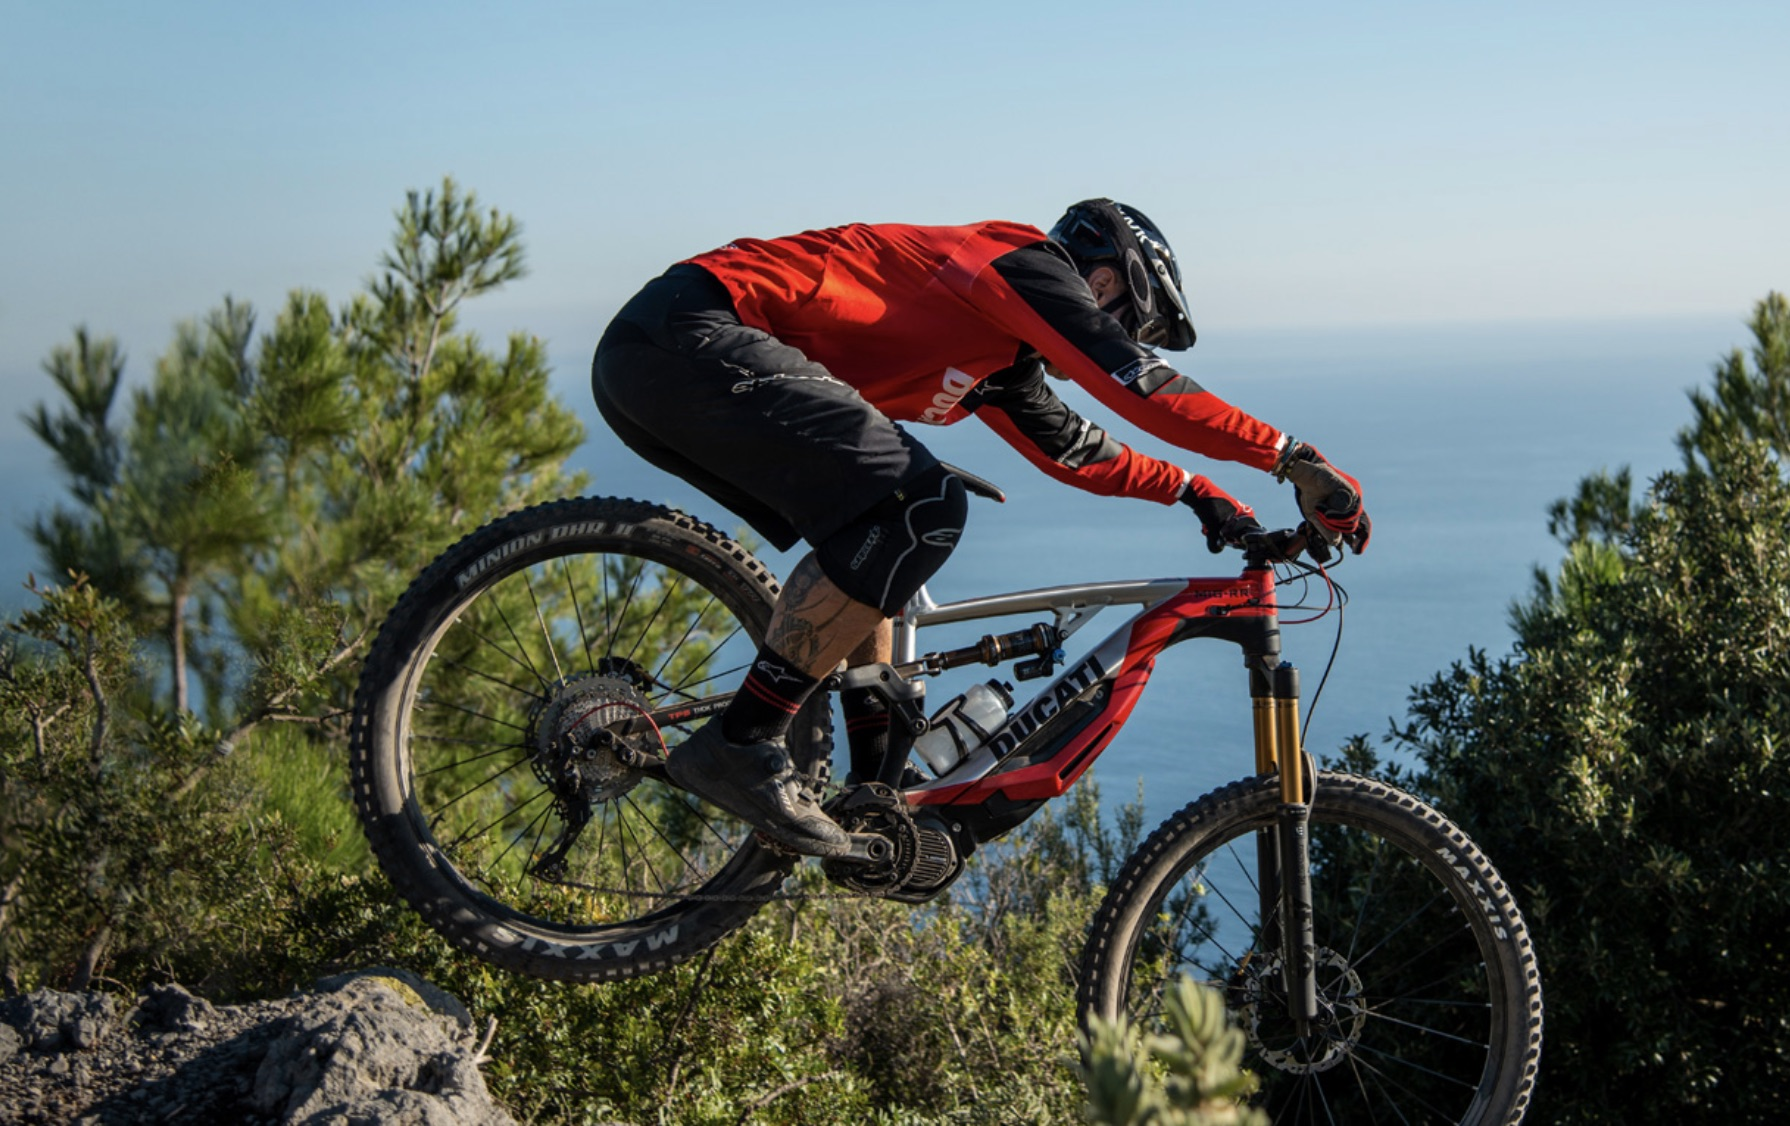 Ducati MIG-RR Mountain Bike